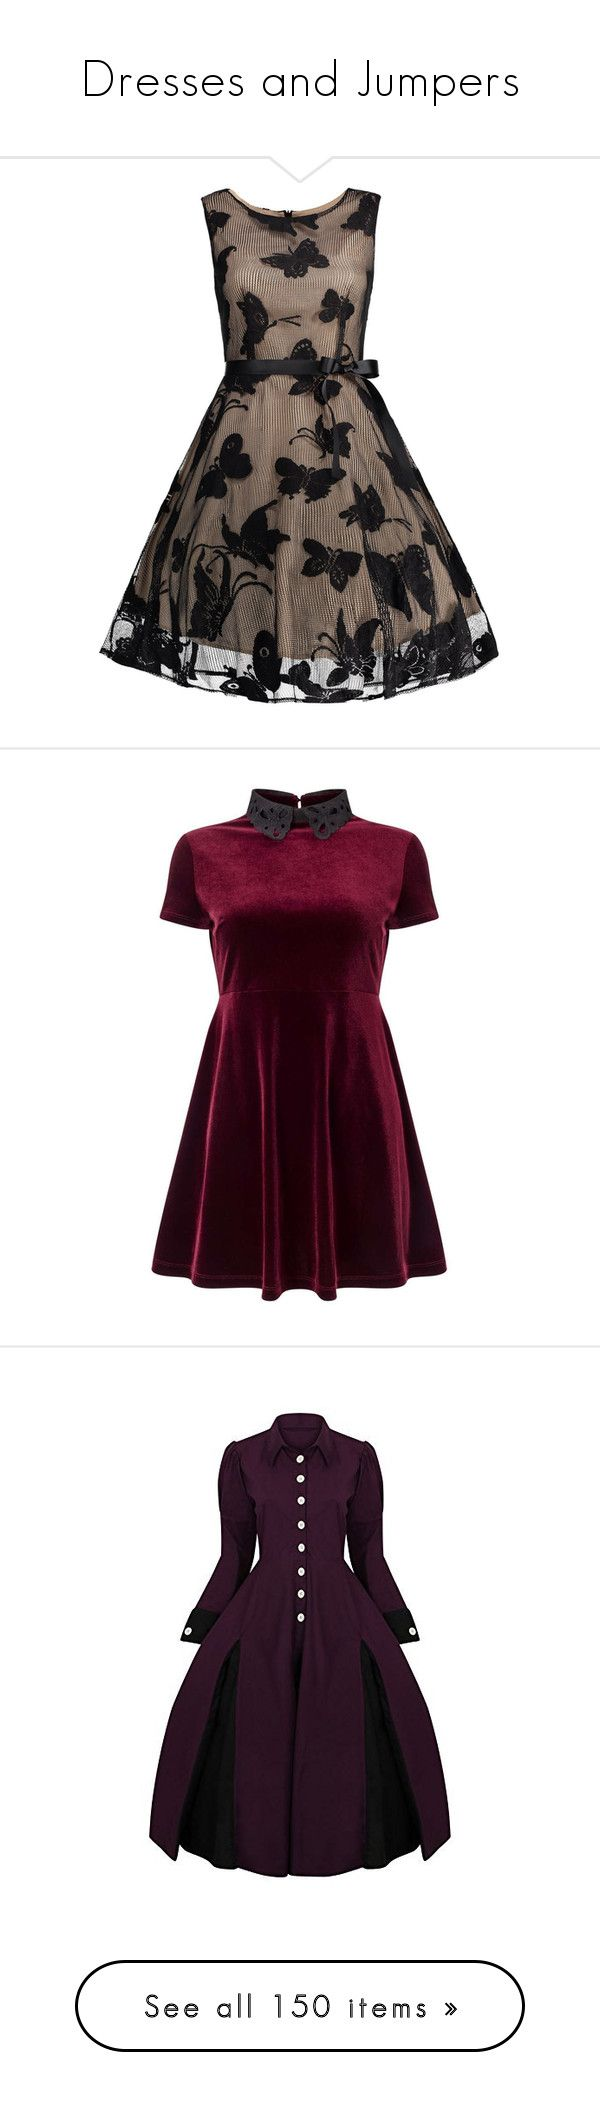 """""""Dresses and Jumpers"""" by rarimena ❤ liked on Polyvore featuring dresses, plus size prom dresses, plus size a line dresses, a line dress, jacquard a line dress, brown dresses, vestidos, short dresses, burgundy and petite"""